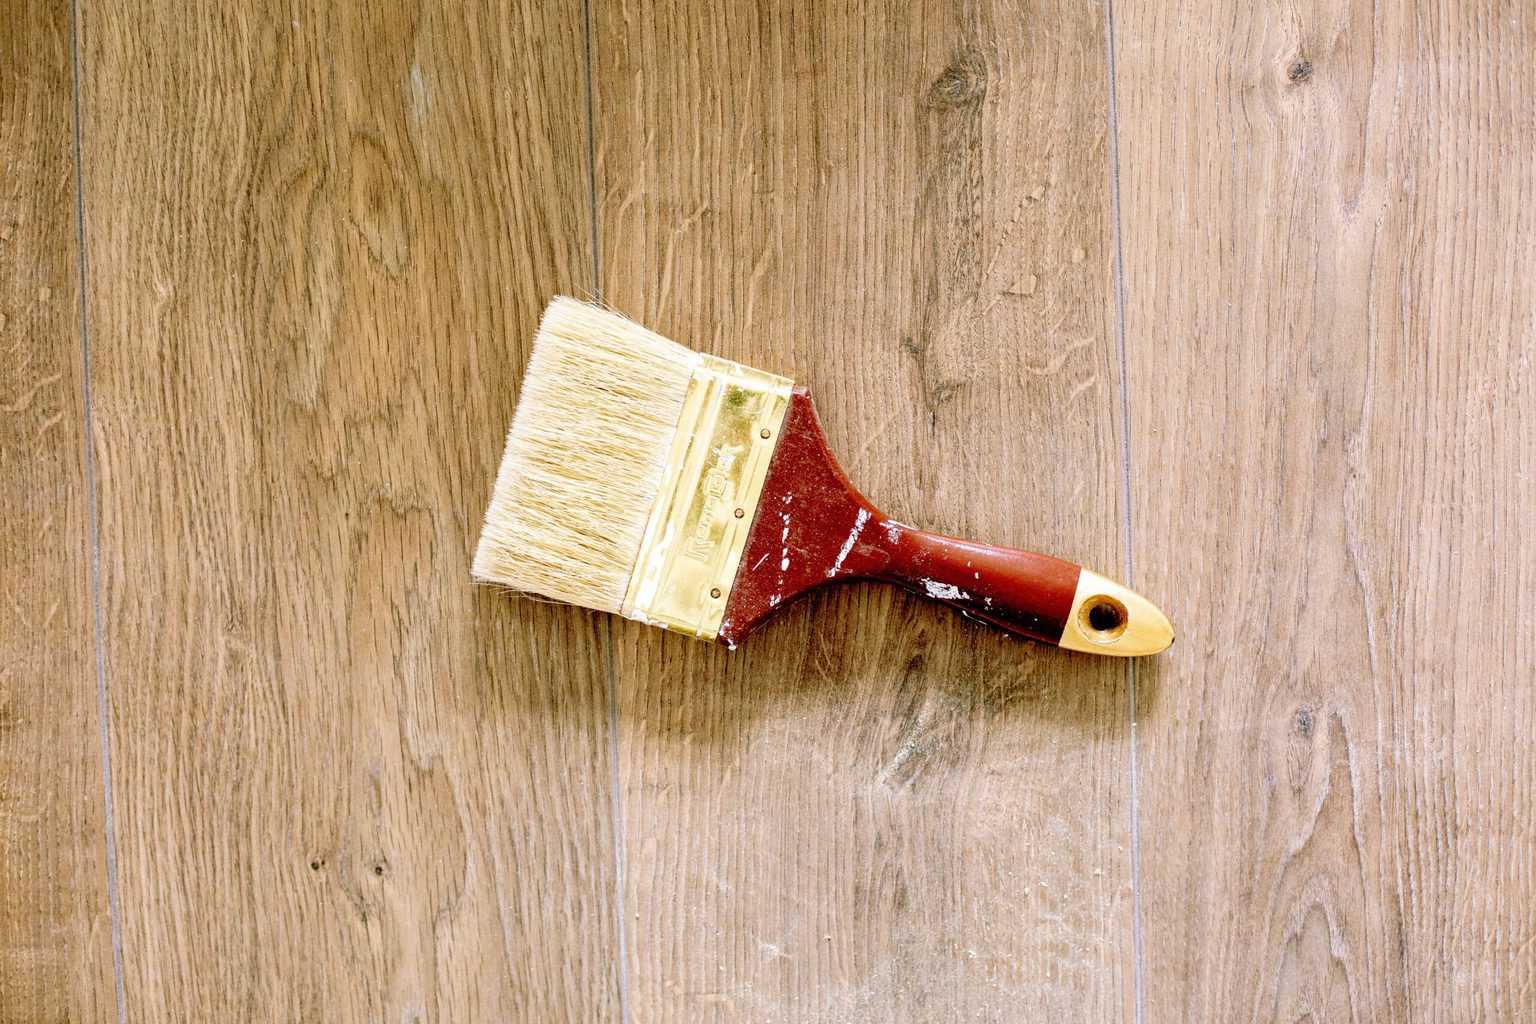 A paint brush on top of a wood